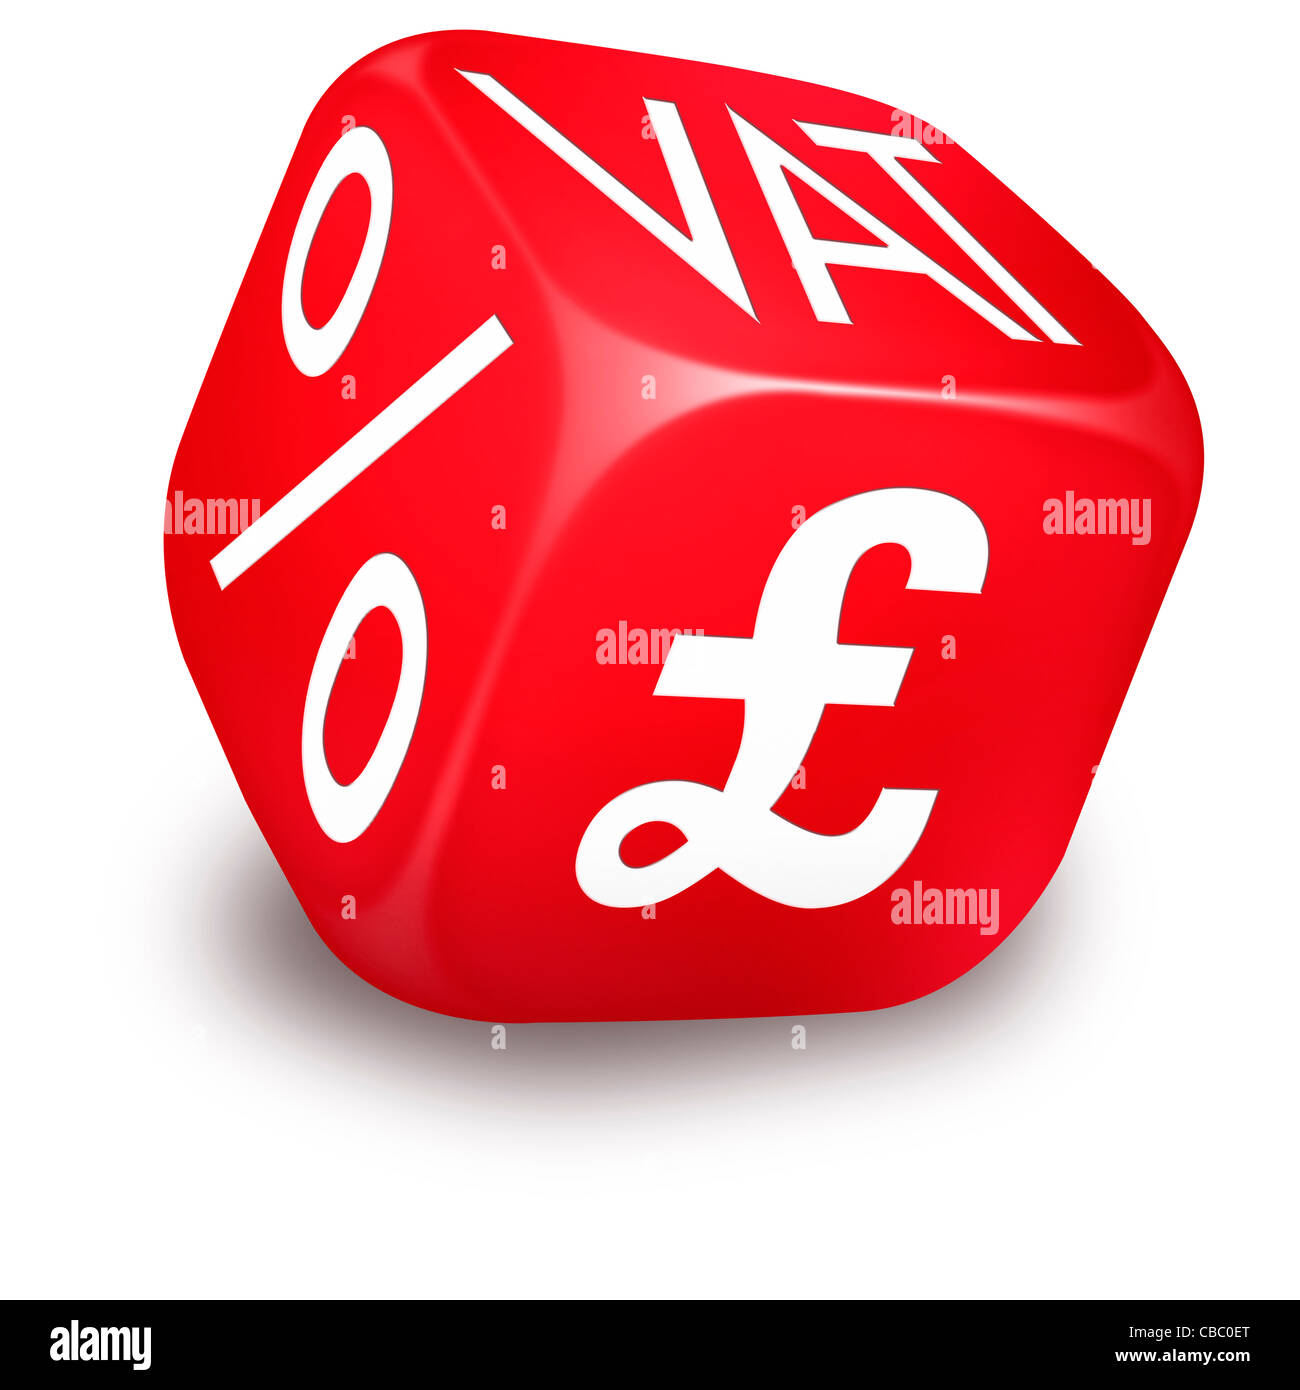 Red rolling dice with VAT, Percentage and British Sterling Symbols printed on its sides - Stock Image